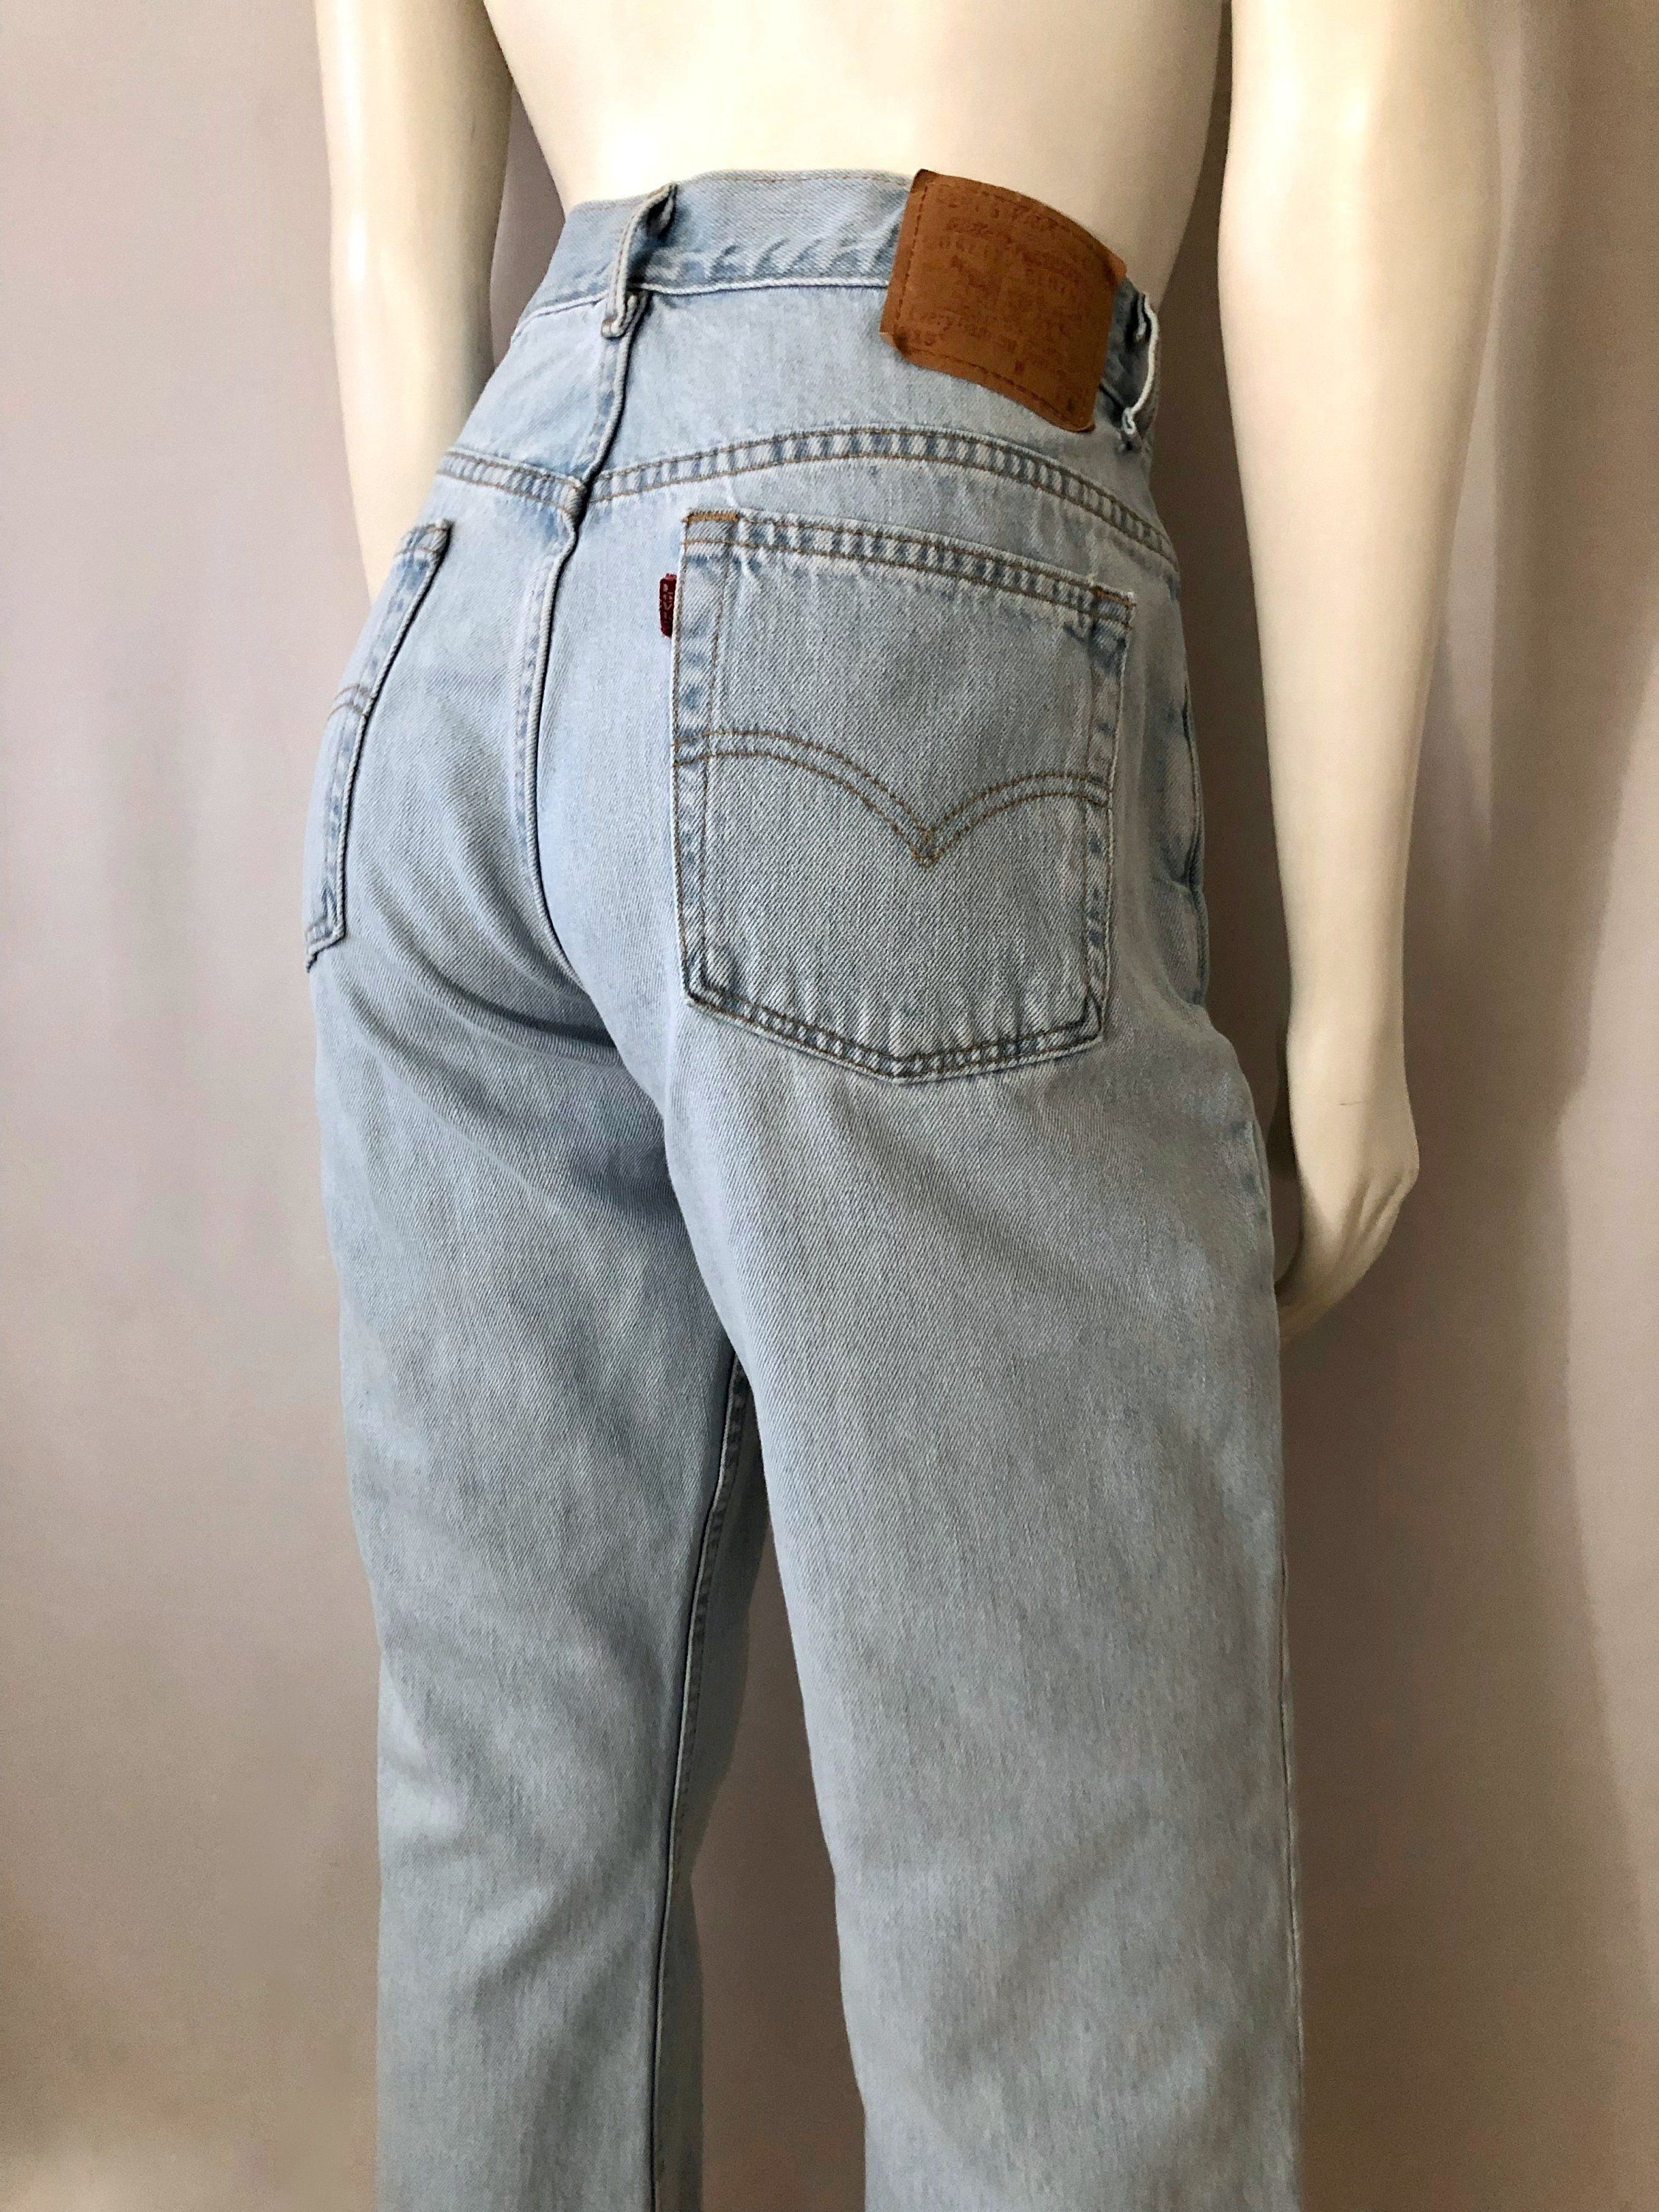 ab4f38ed Vintage Women's 90's Levi's 515, Jeans, Boot Cut, High Waisted, Denim (L)  by Freshandswanky on Etsy